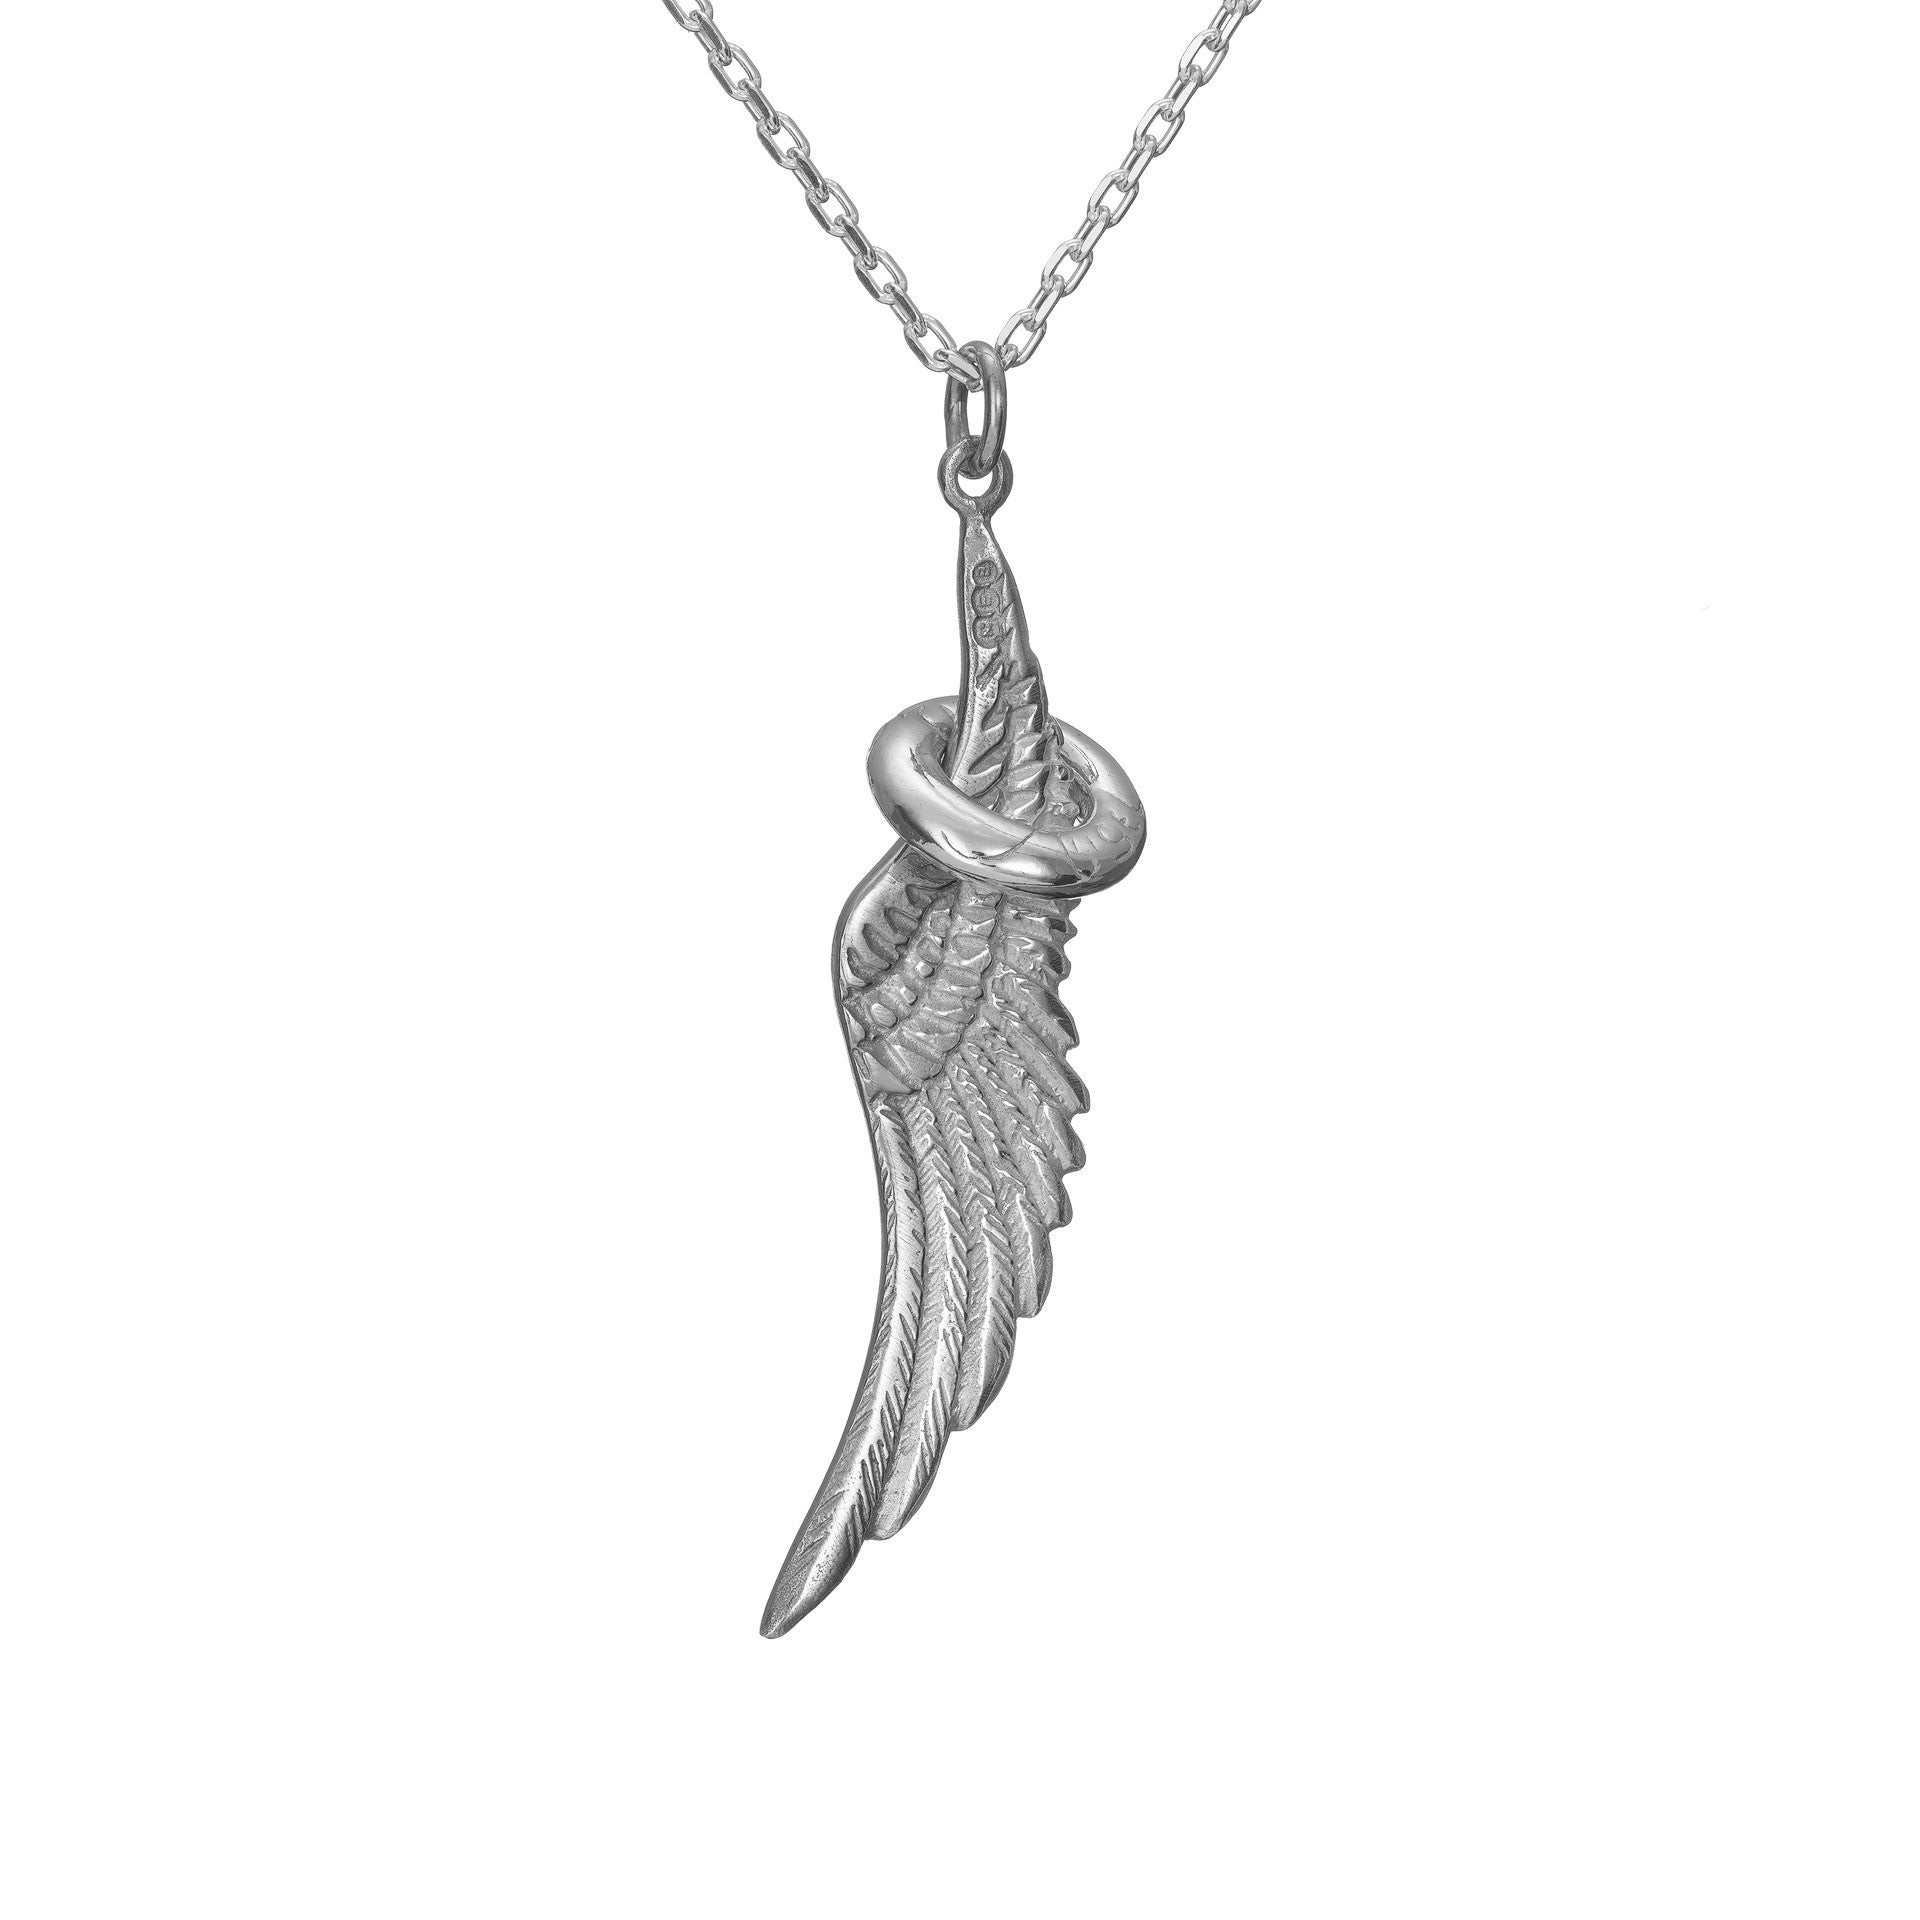 Sterling Silver Angel Halo & Wing Pendant, a perfect, meaningful jewelry gift for that someone special!